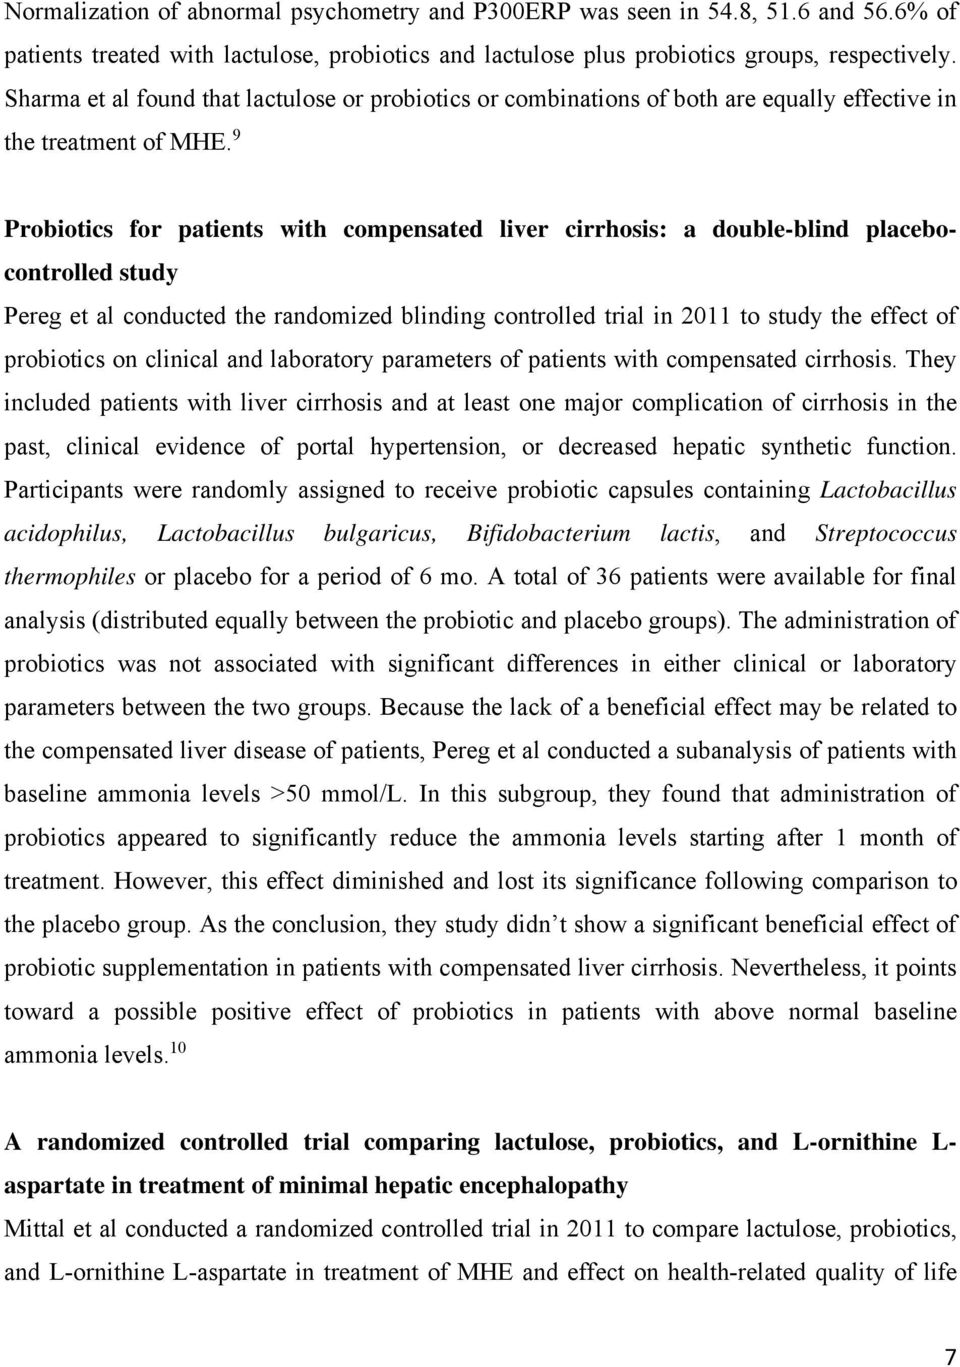 9 Probiotics for patients with compensated liver cirrhosis: a double-blind placebocontrolled study Pereg et al conducted the randomized blinding controlled trial in 2011 to study the effect of